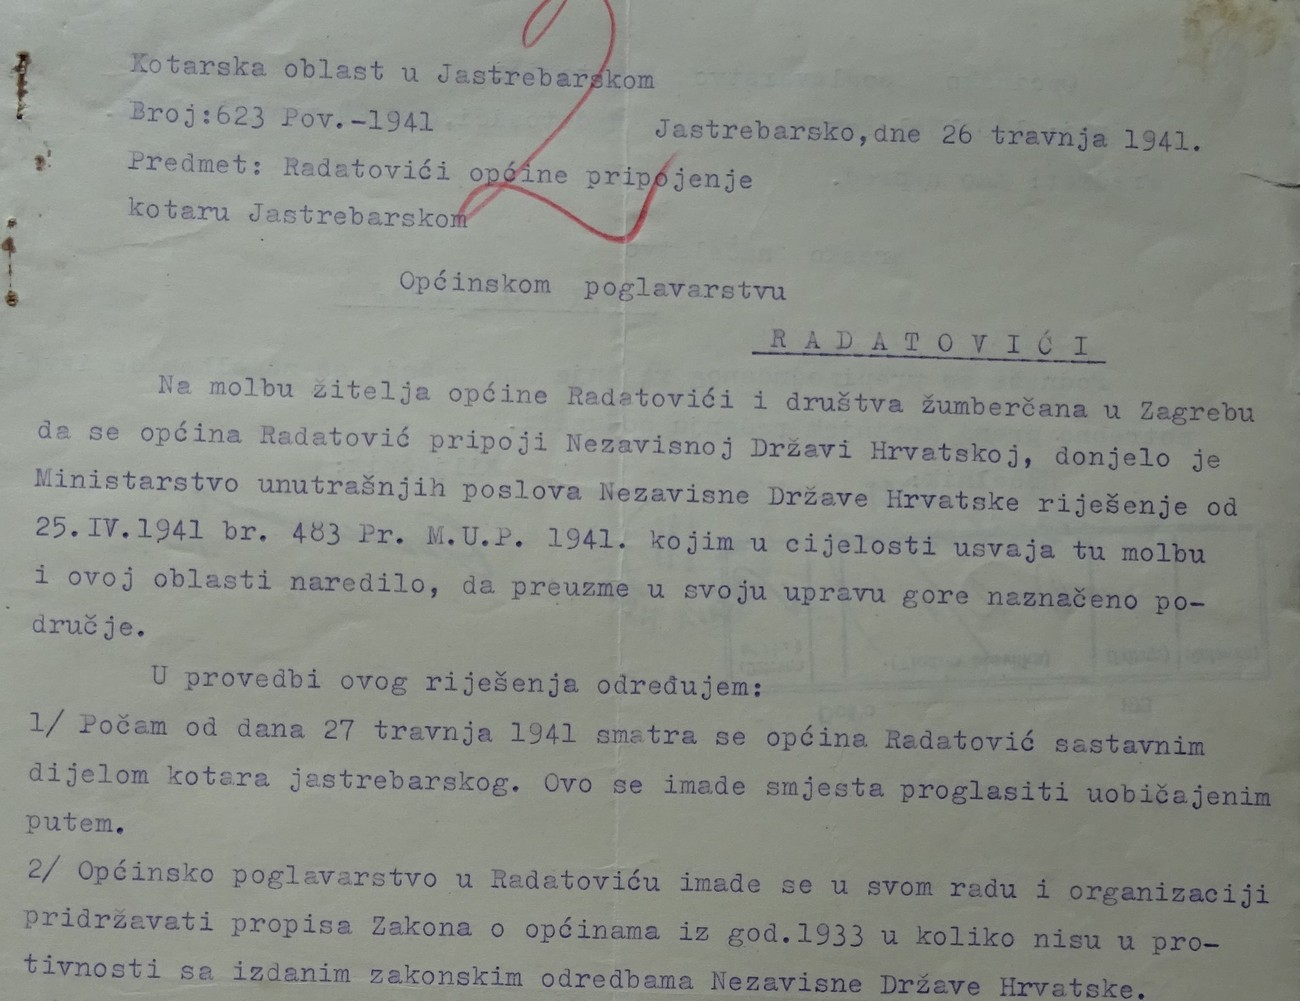 There was a complication regarding the Municipality of Radatovići, which belonged to the Črnomelj srez (administrative unit). Thus, Kotarska oblast (County Administration) in Jastrebarsko informed the Municipality of Radatovići that the NDH Ministry of the Interior had annexed it to the NDH at the request of the citizens of Radatovići and the society of the people of Žumberak from Zagreb. Archives of the RS.